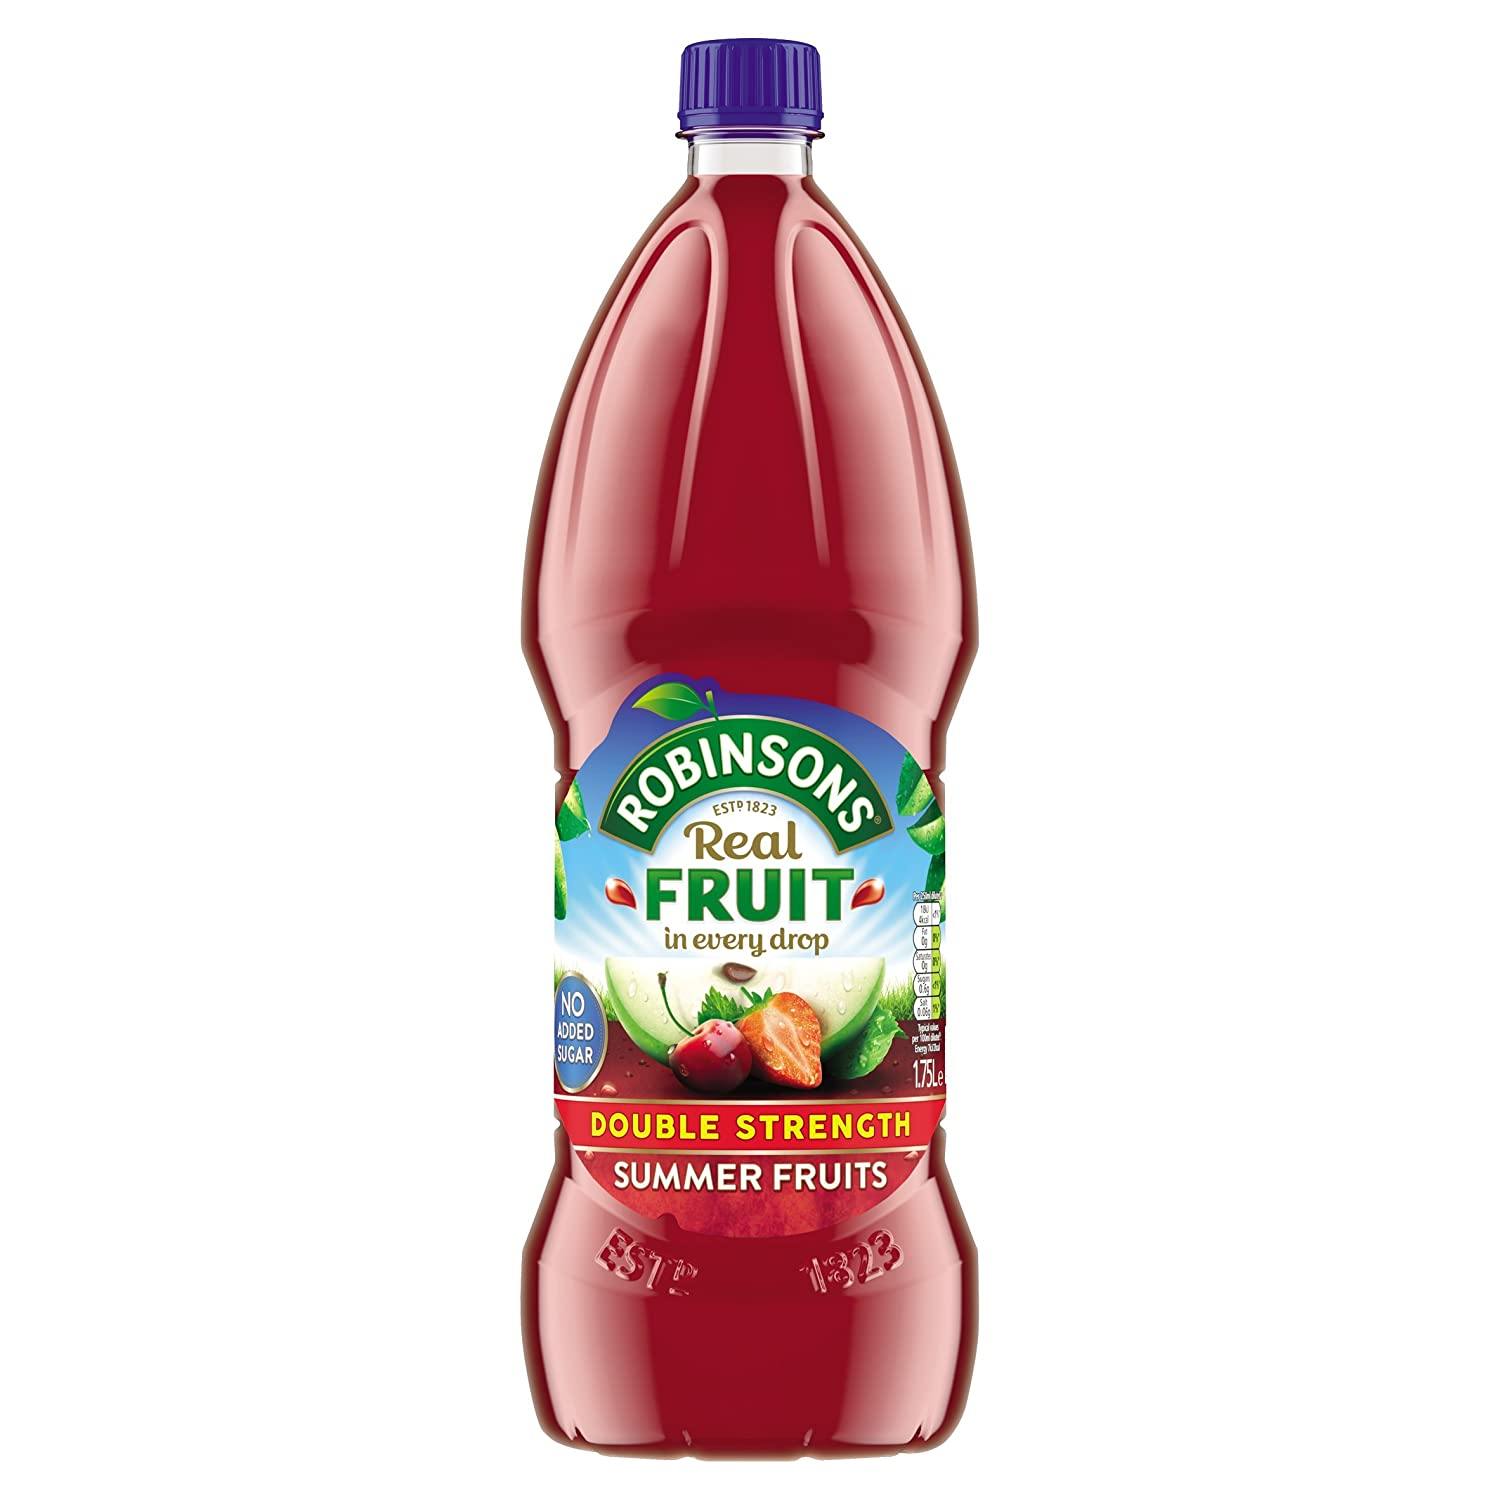 Robinsons Double Concentrate Summer Fruits Squash 175l Amazonco Sucralose Tate Lyle 100ml Grocery